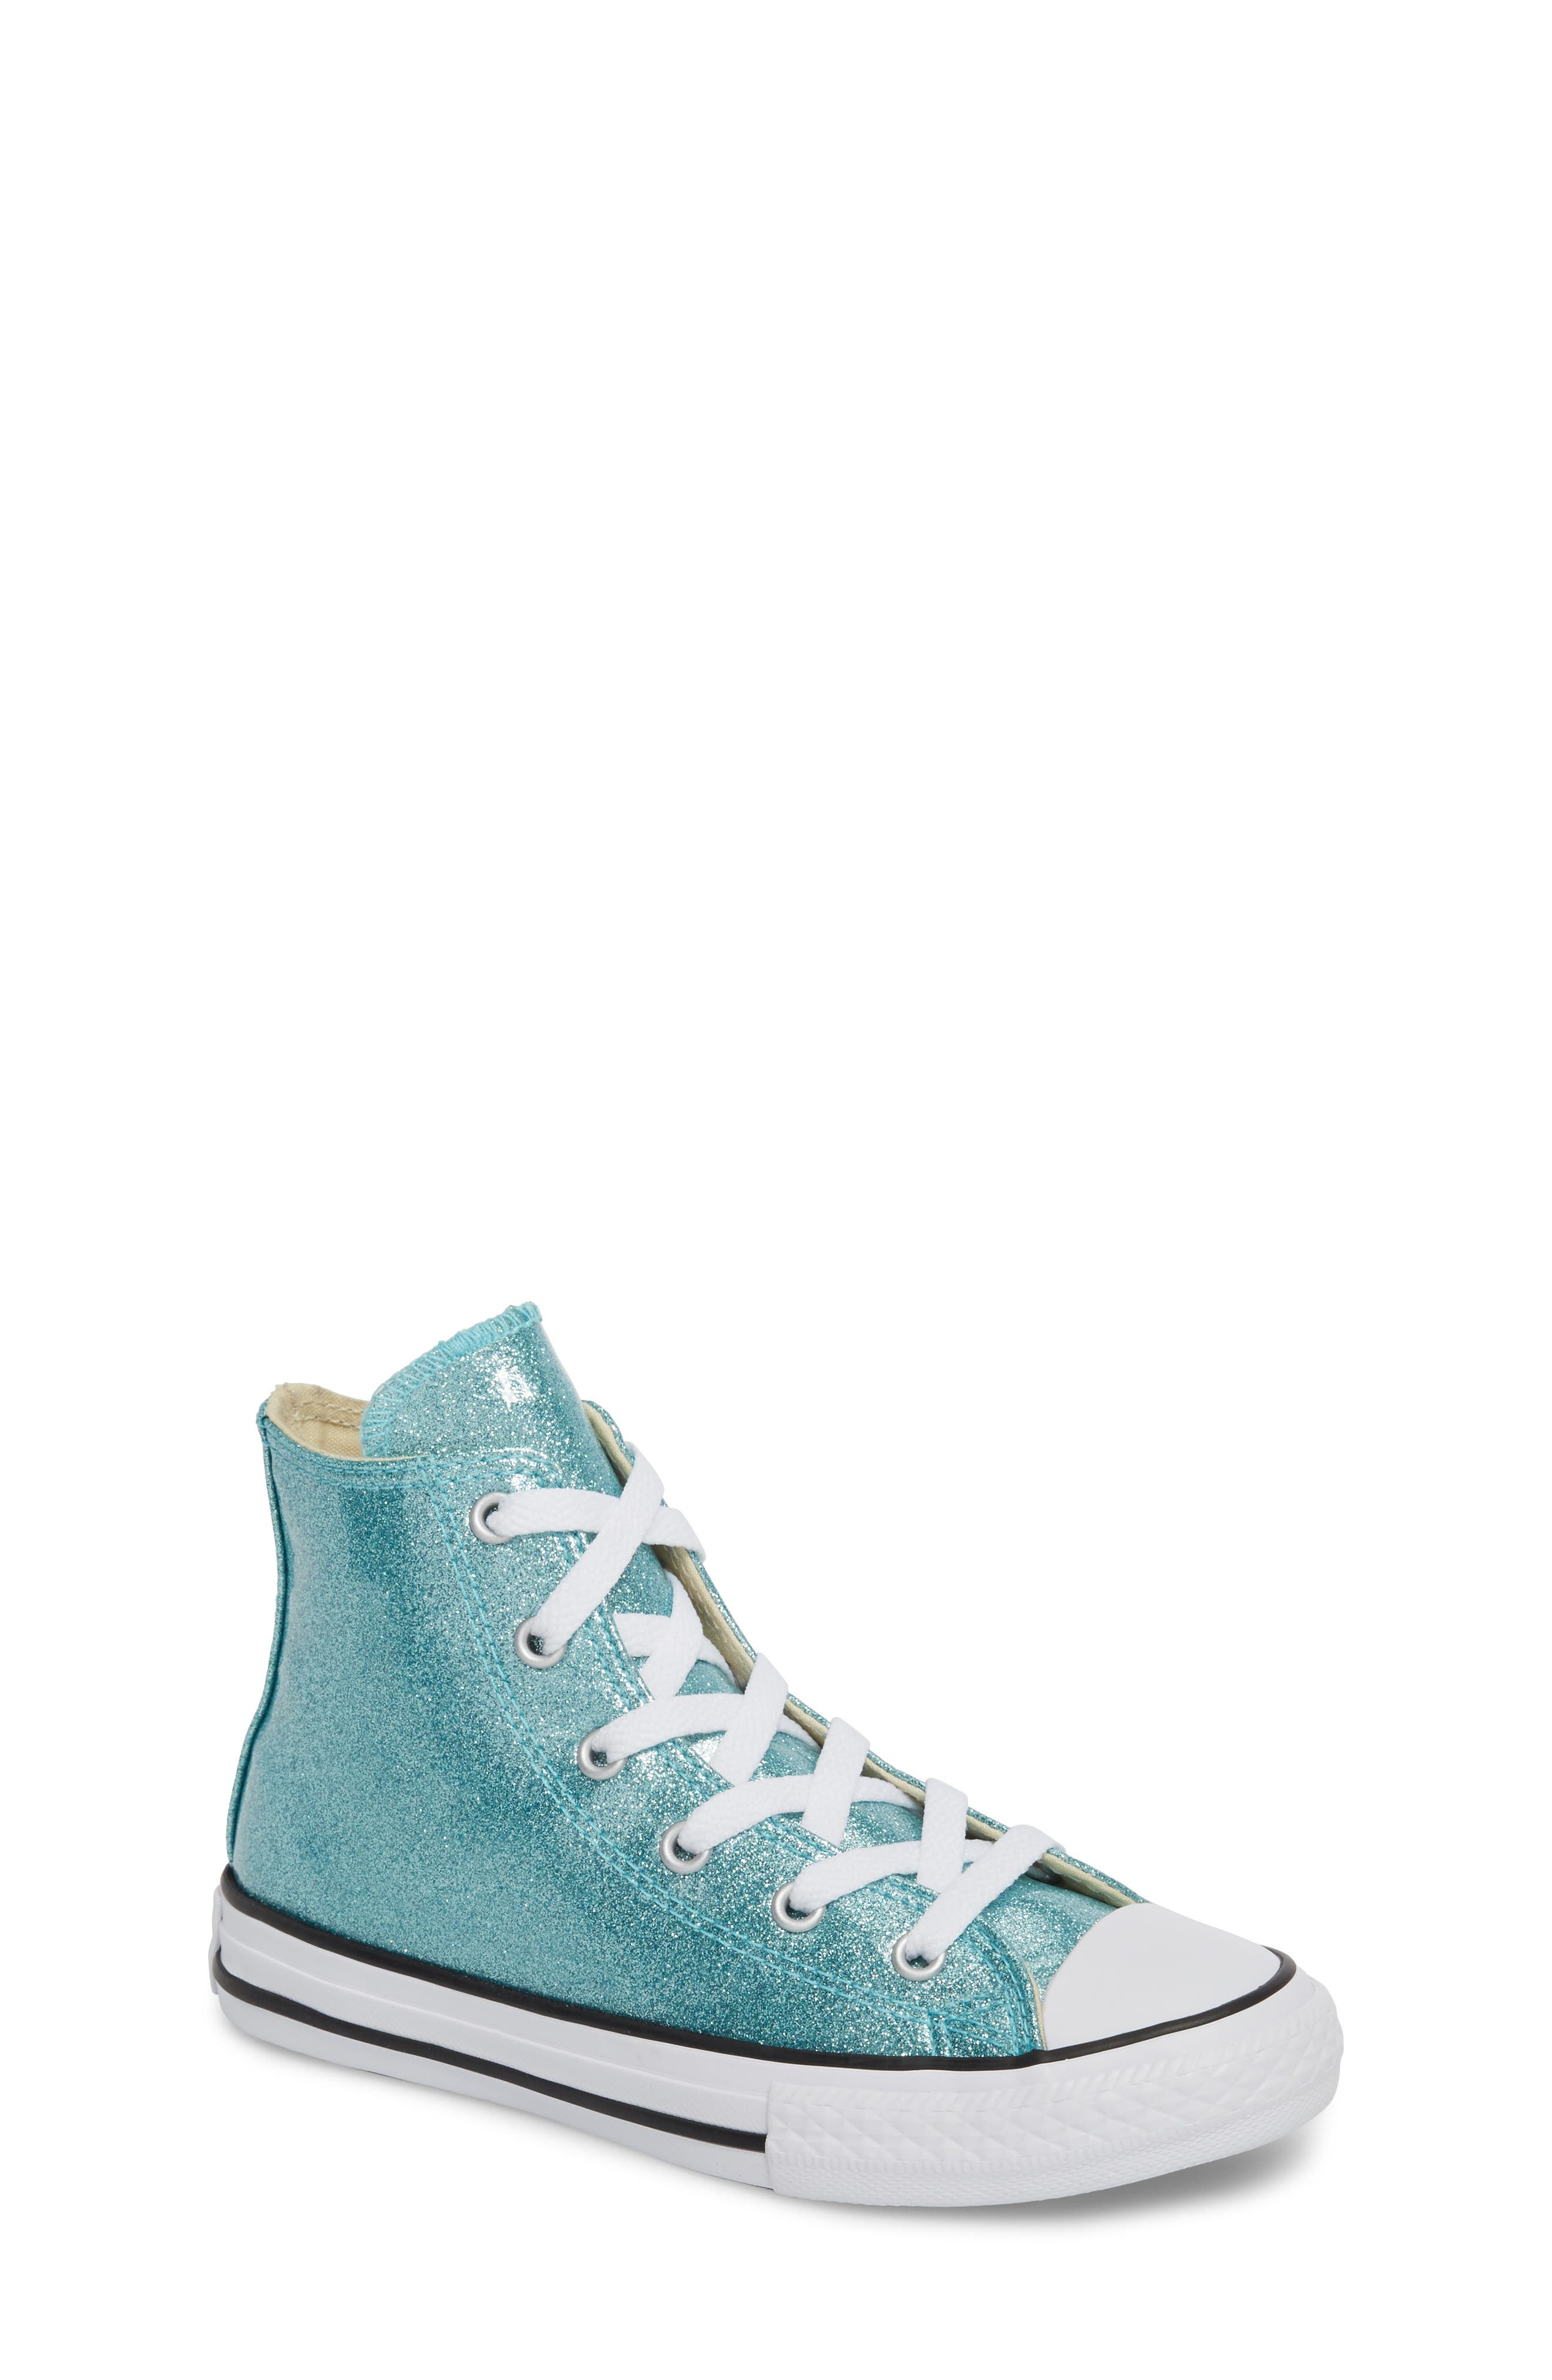 All Star<sup>®</sup> Glitter High Top Sneaker,                         Main,                         color, 400